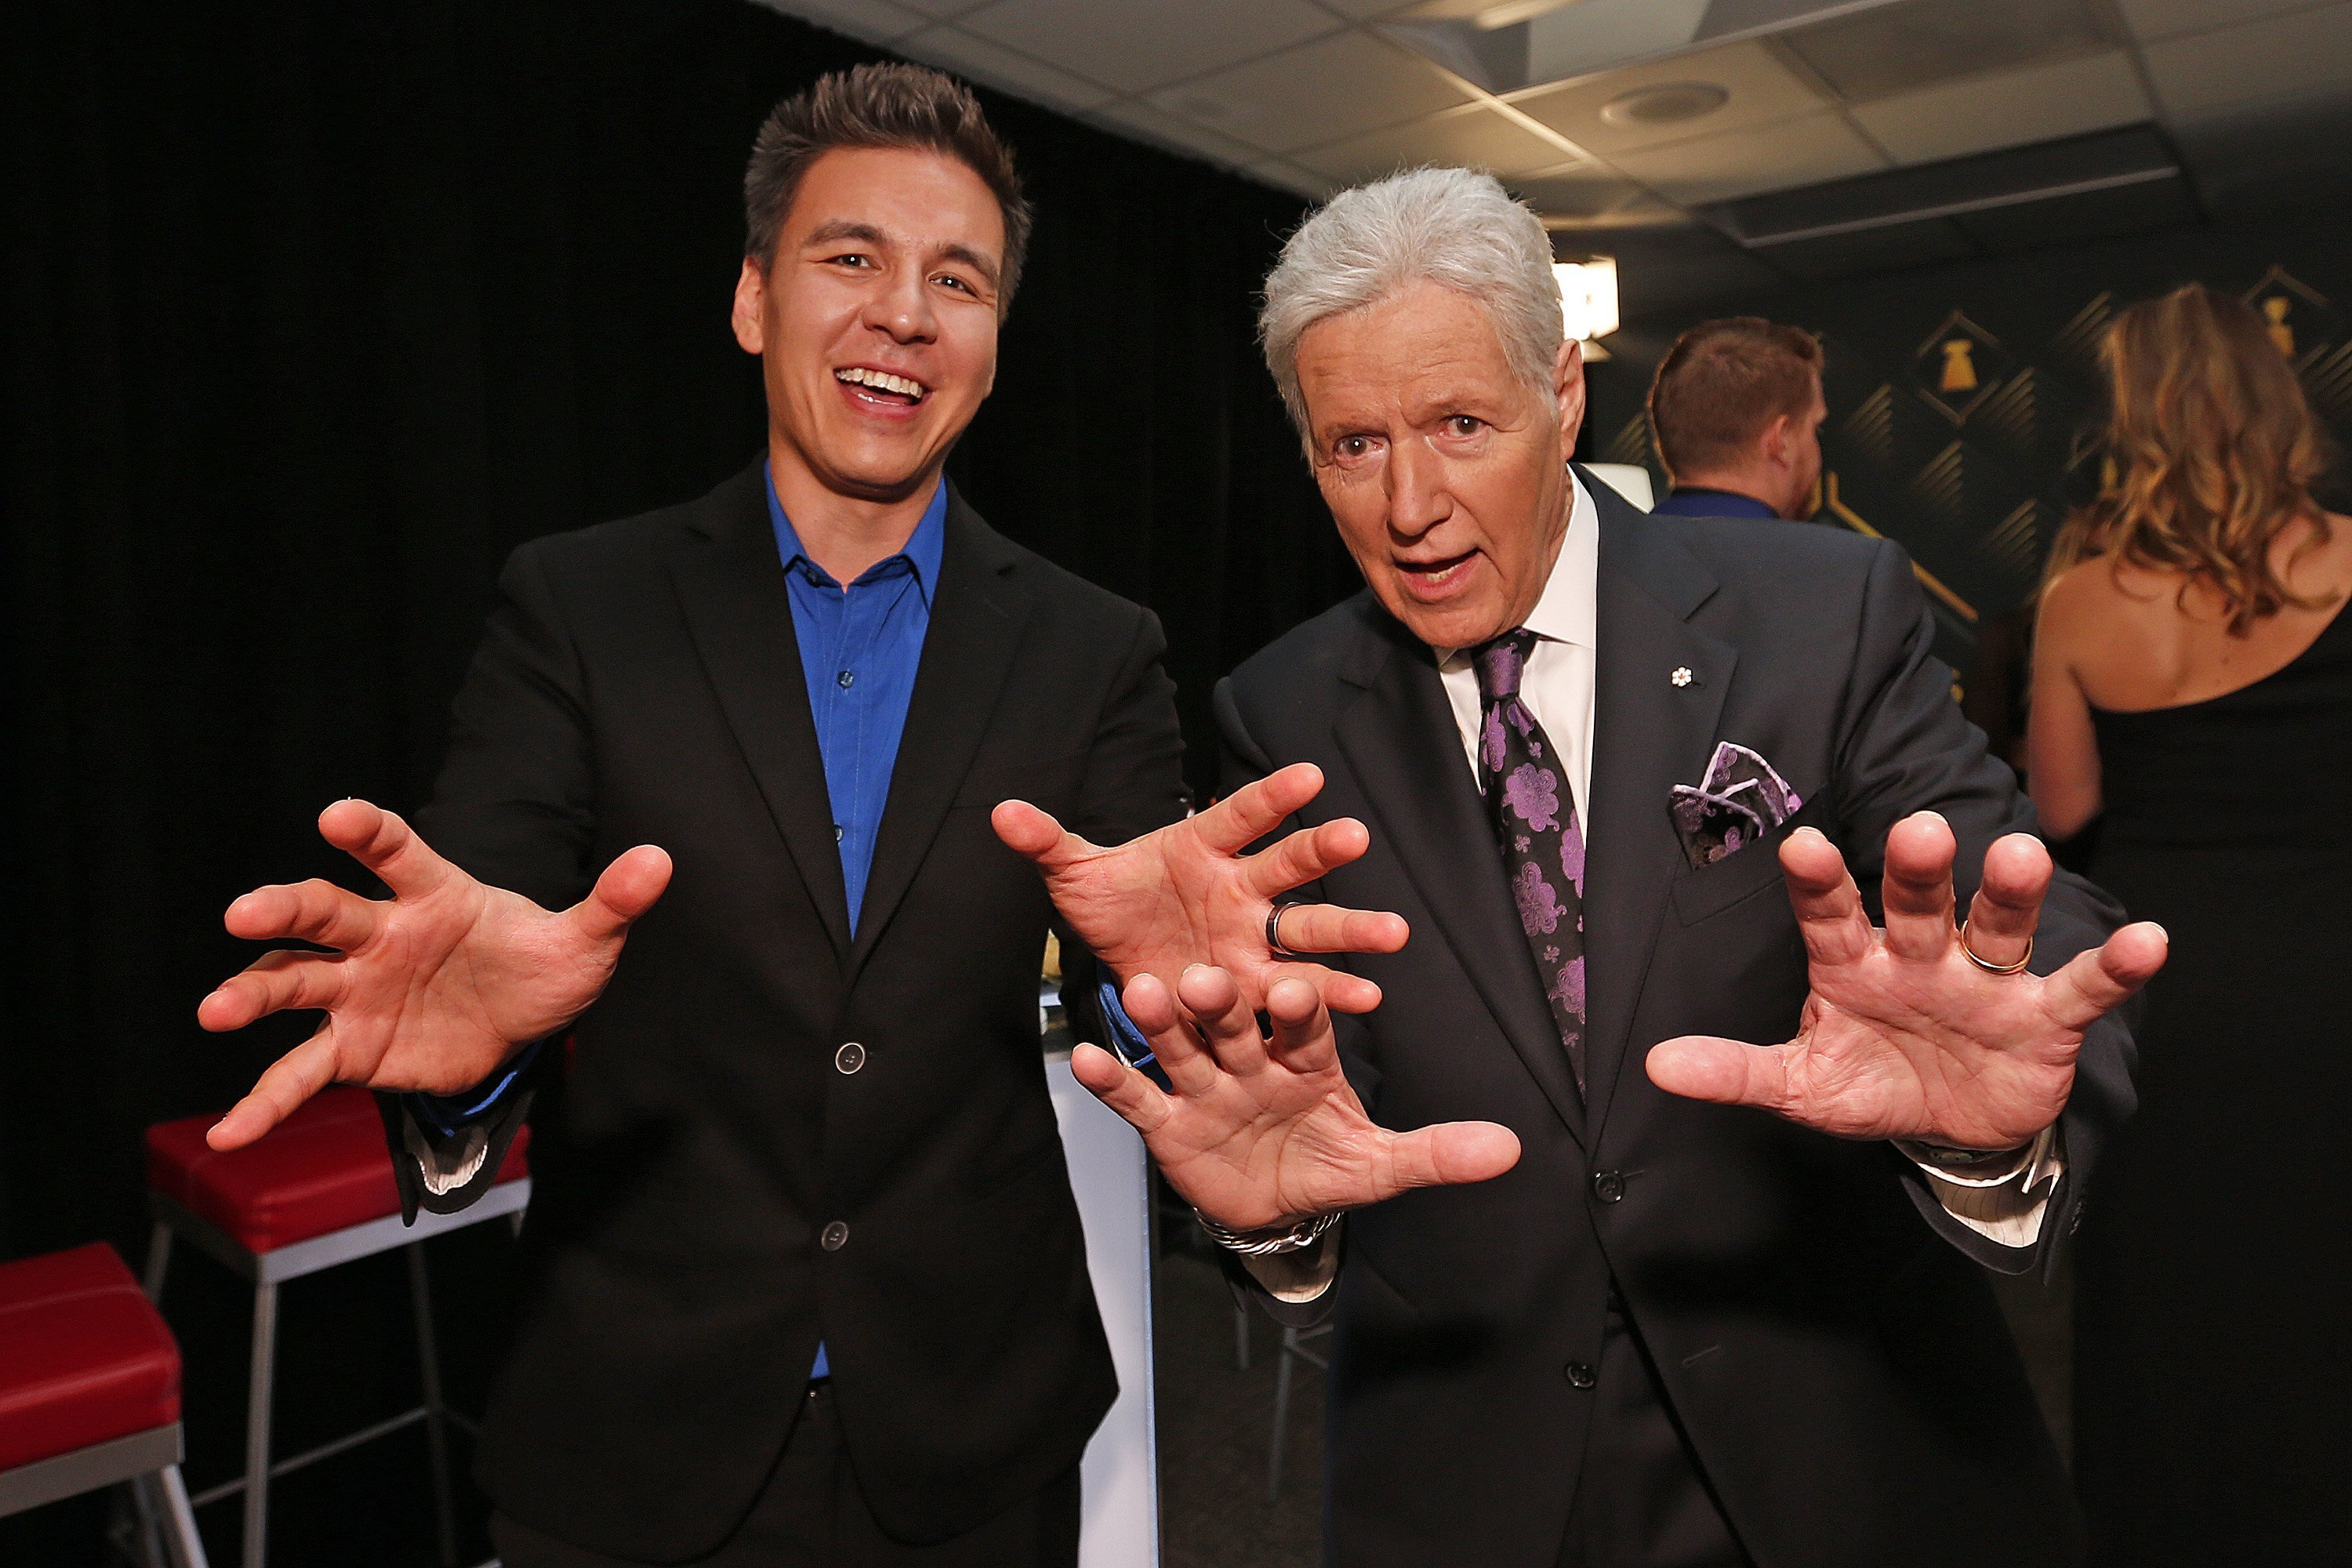 James Holzhauer and Alex Trebek post during the NHL Awards in Las Vegas, Nevada on June 19, 2019 | Photo: Getty Images